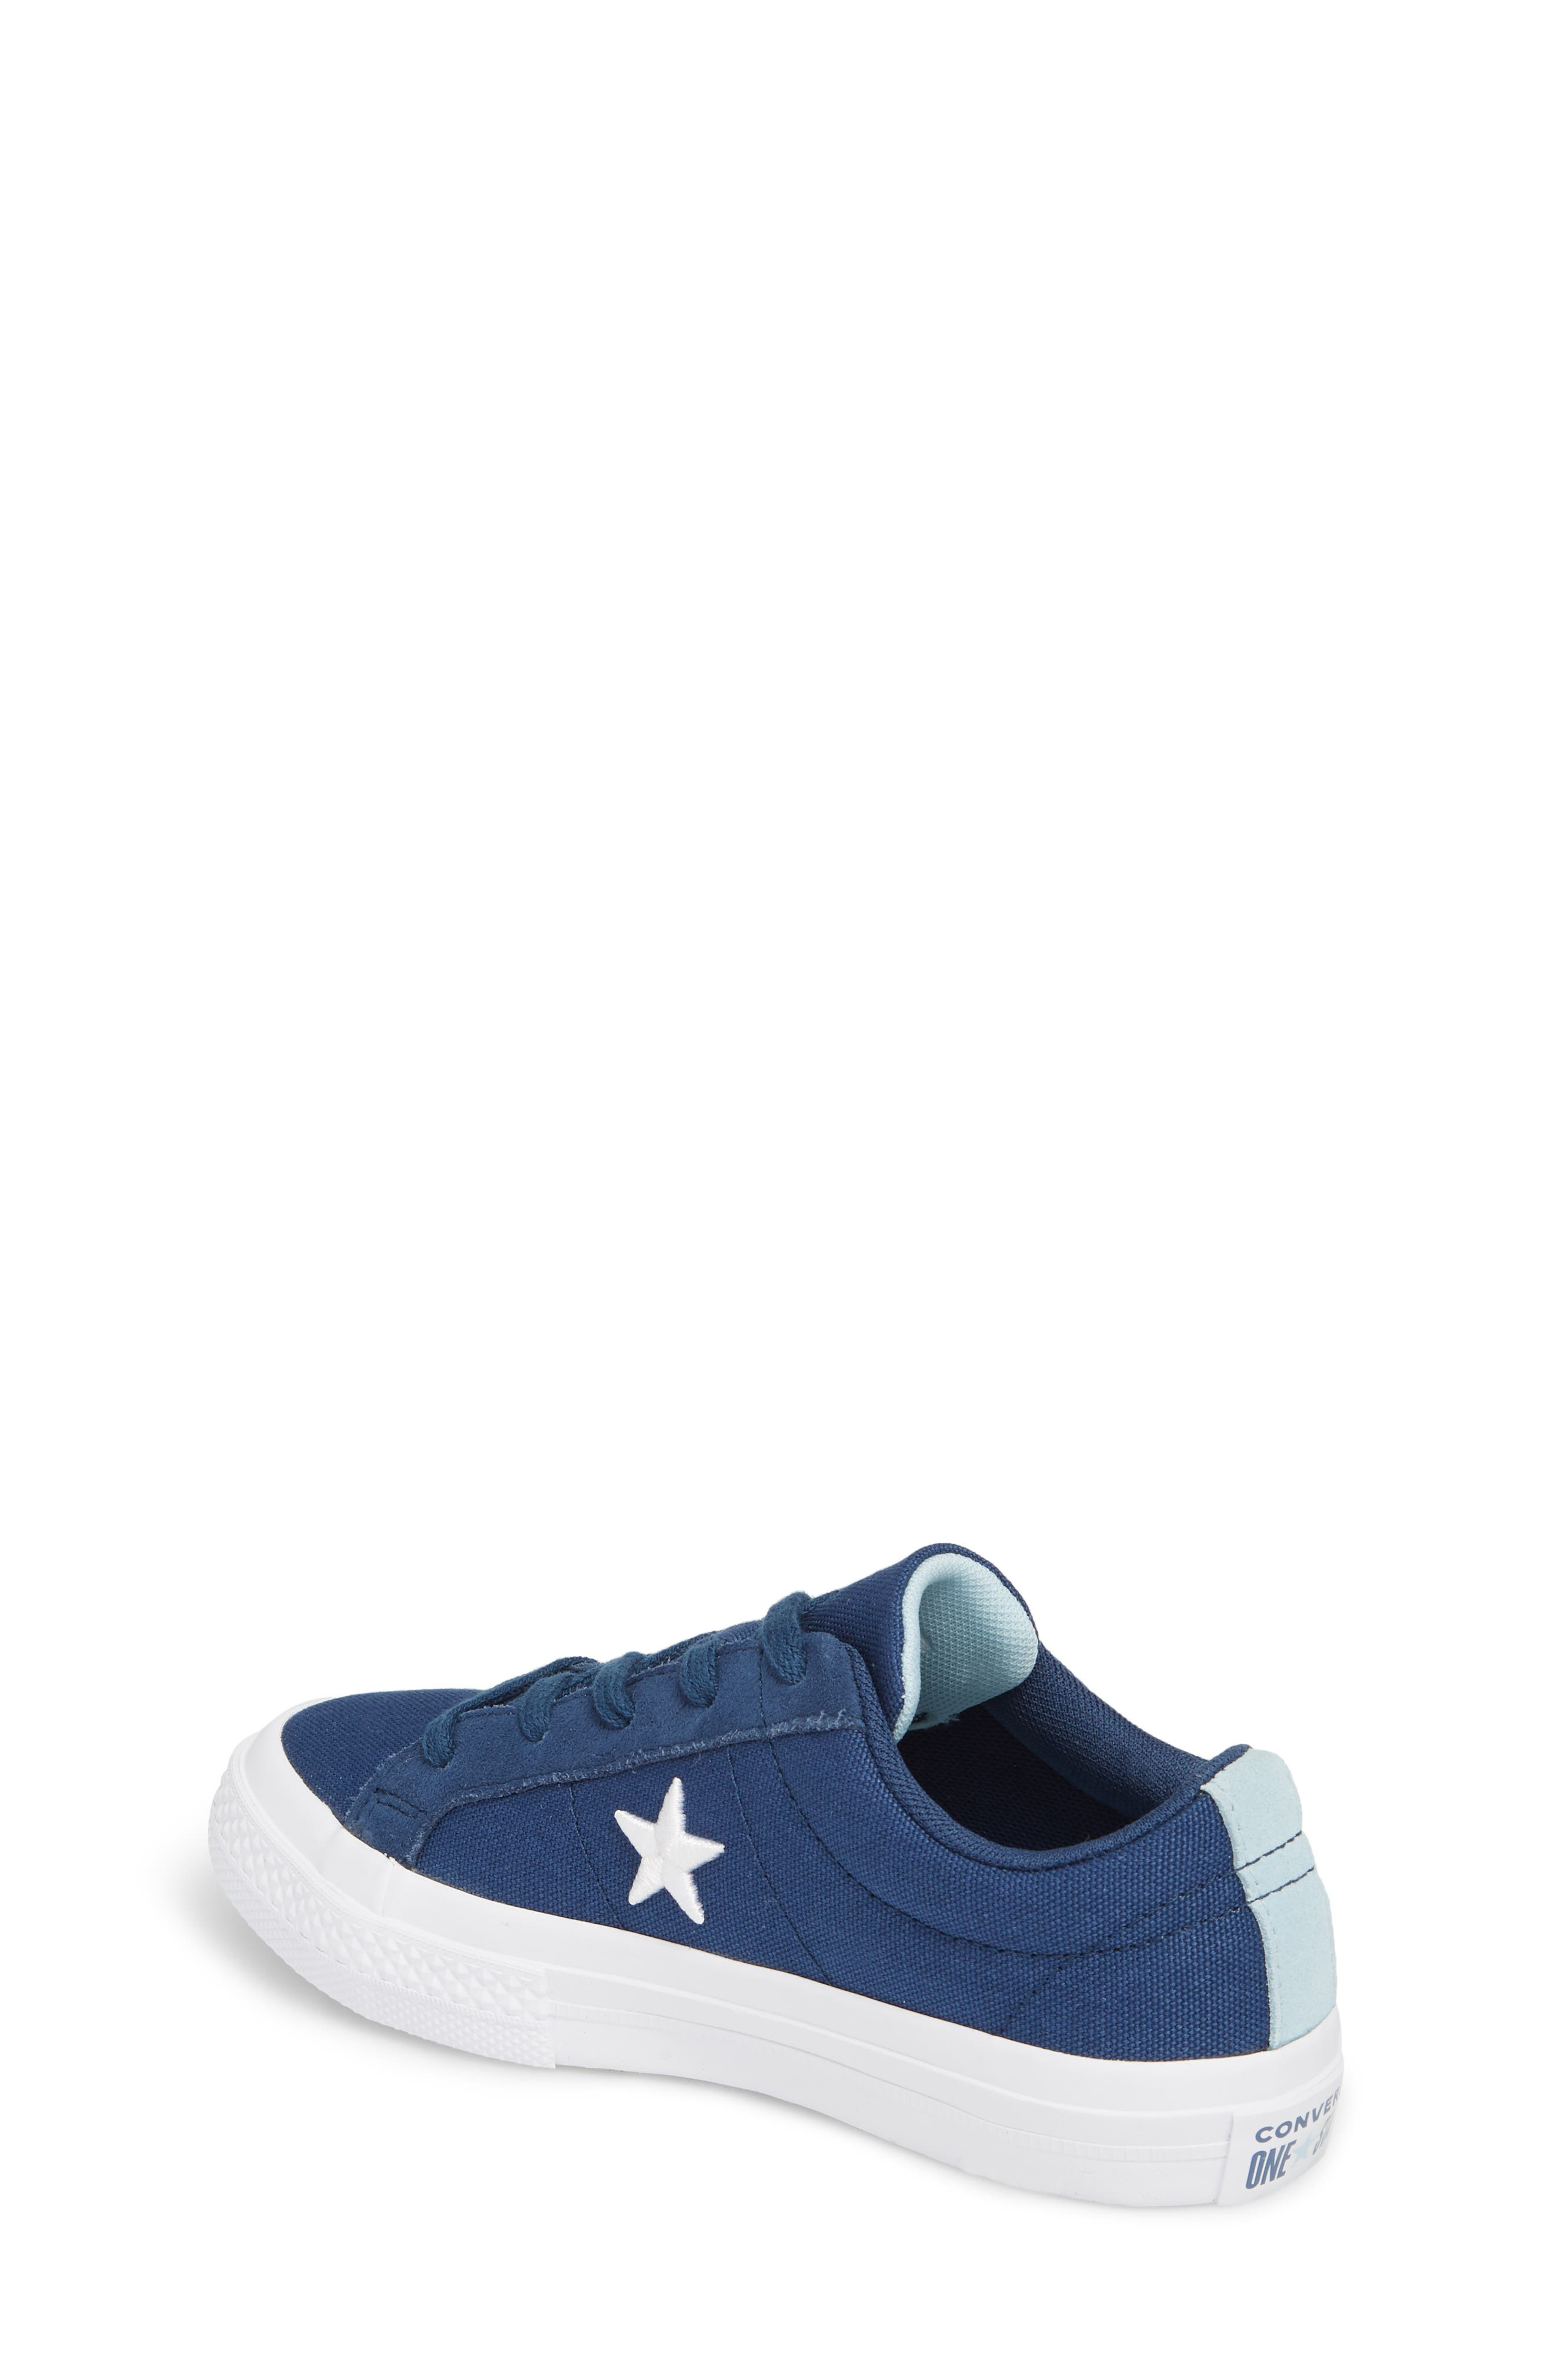 One Star Low-Top Sneaker,                             Alternate thumbnail 2, color,                             426